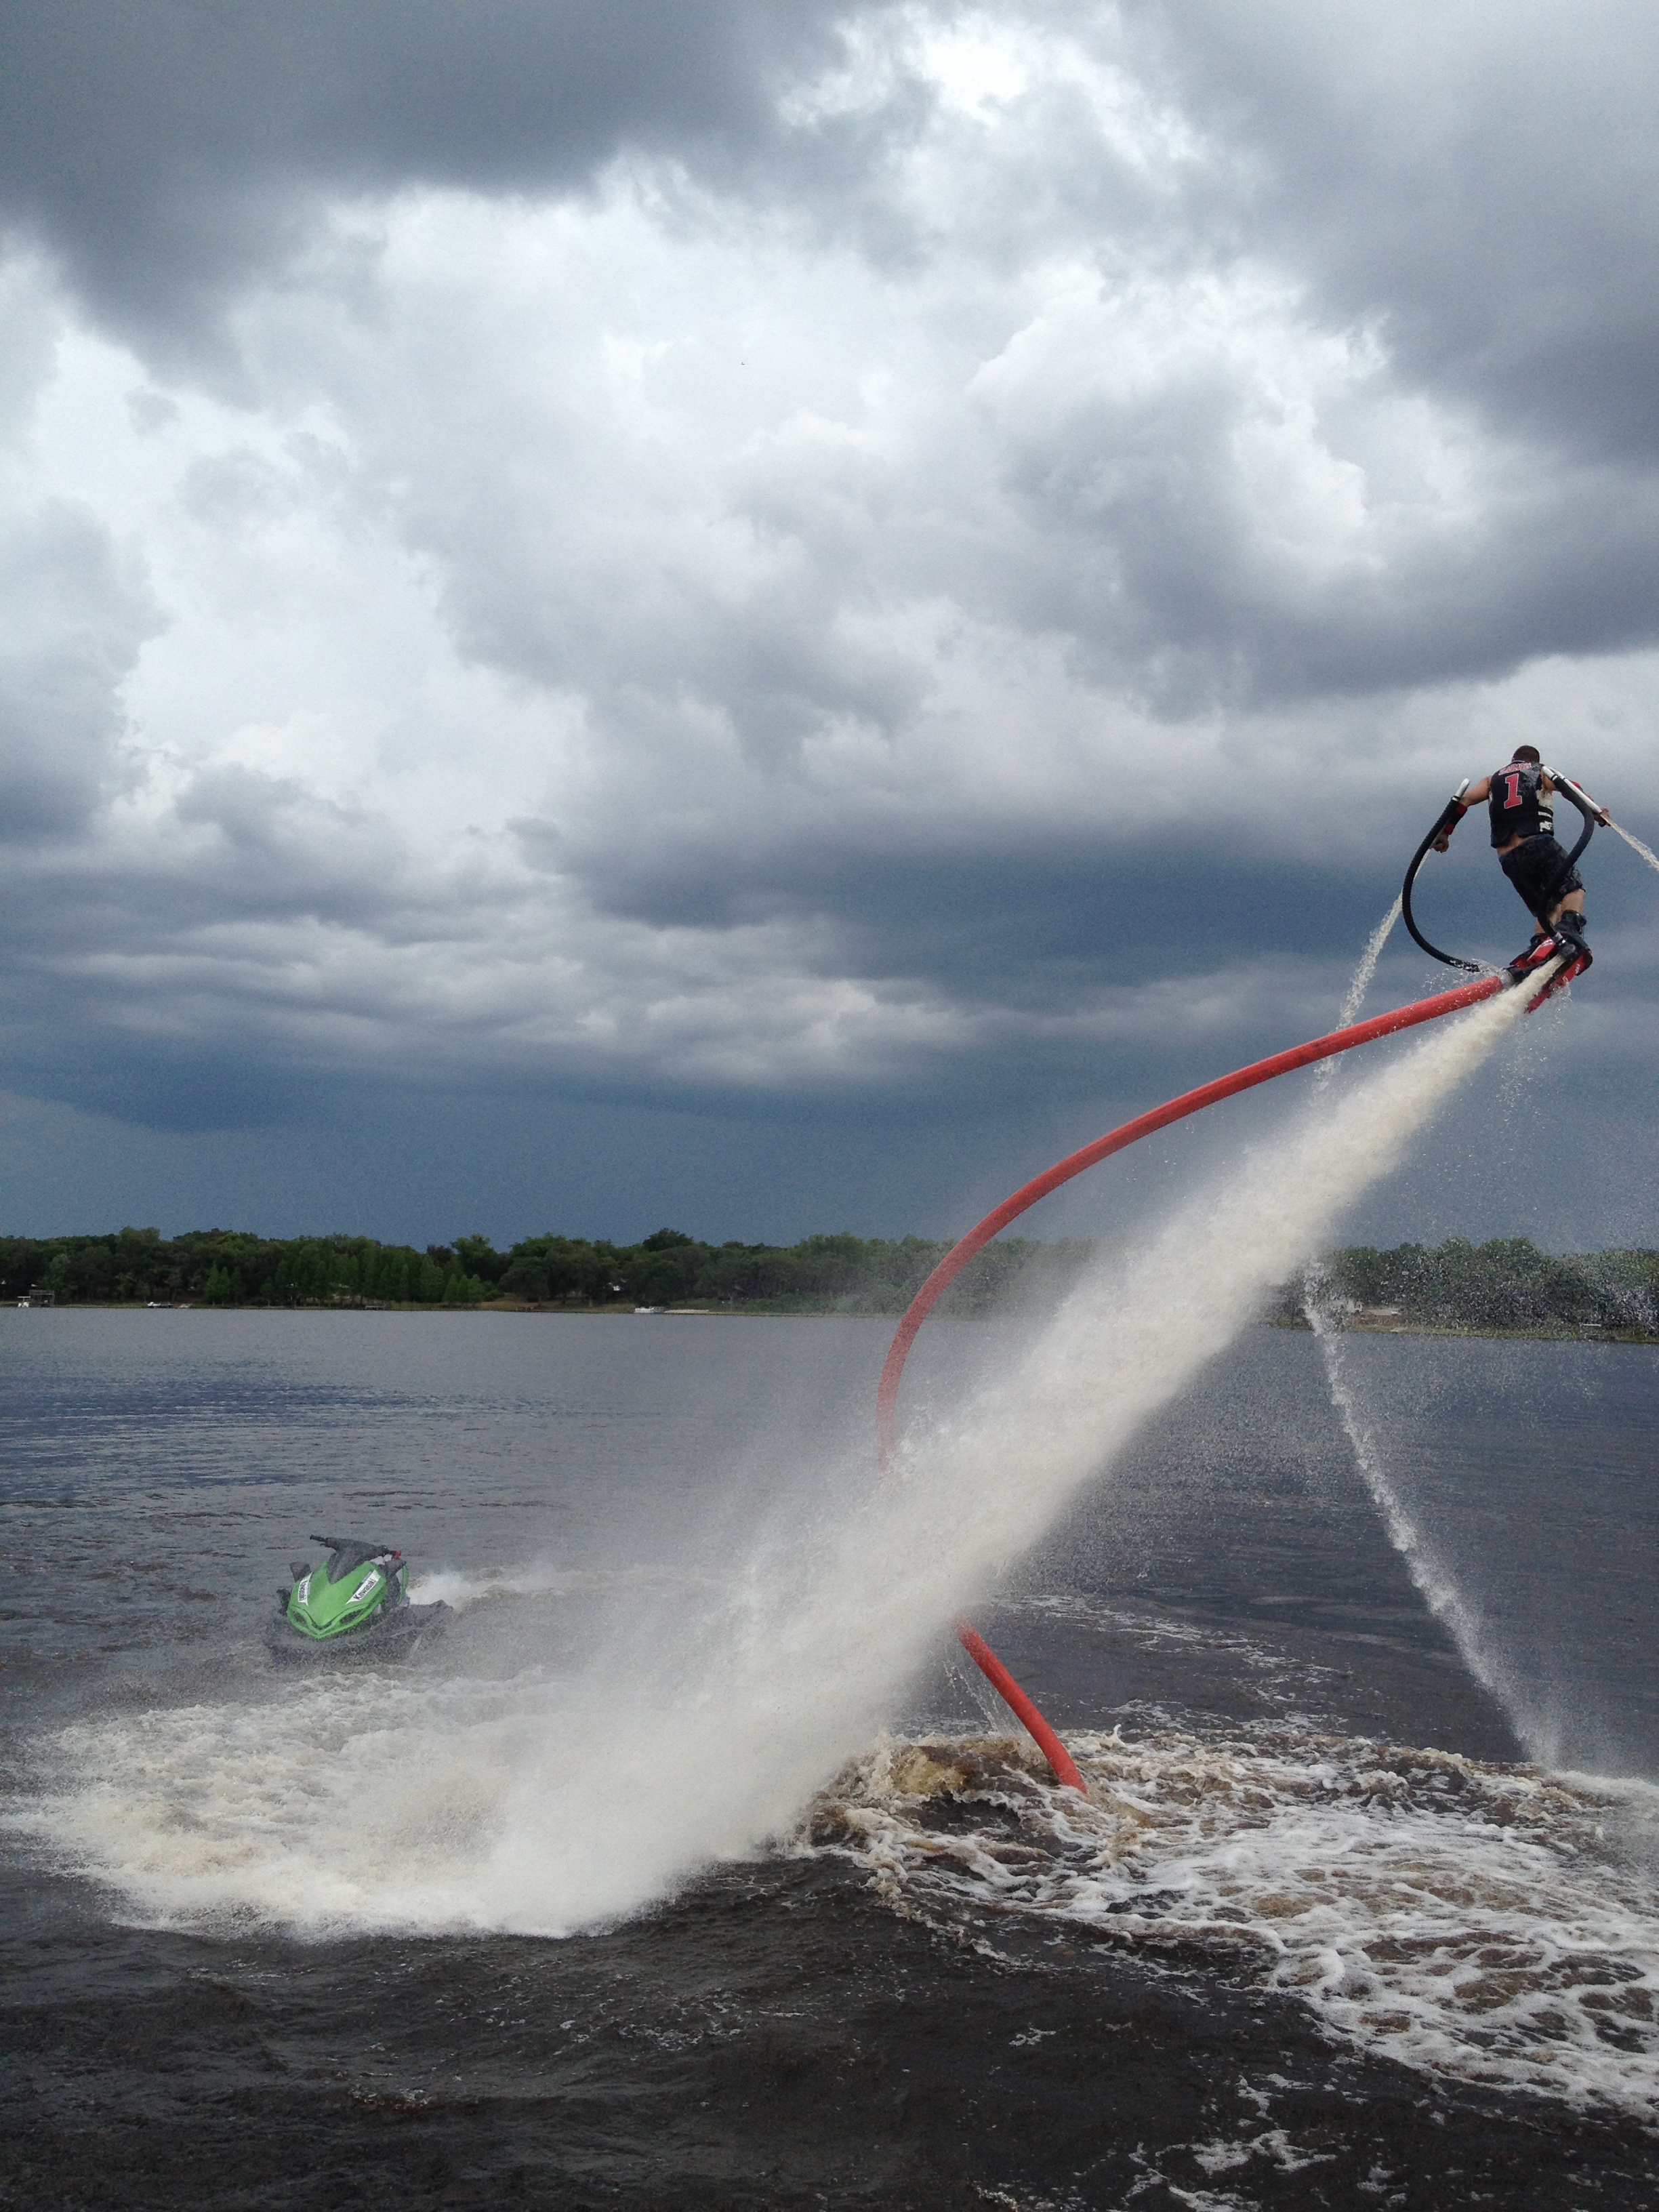 Flyboard Maneuverability